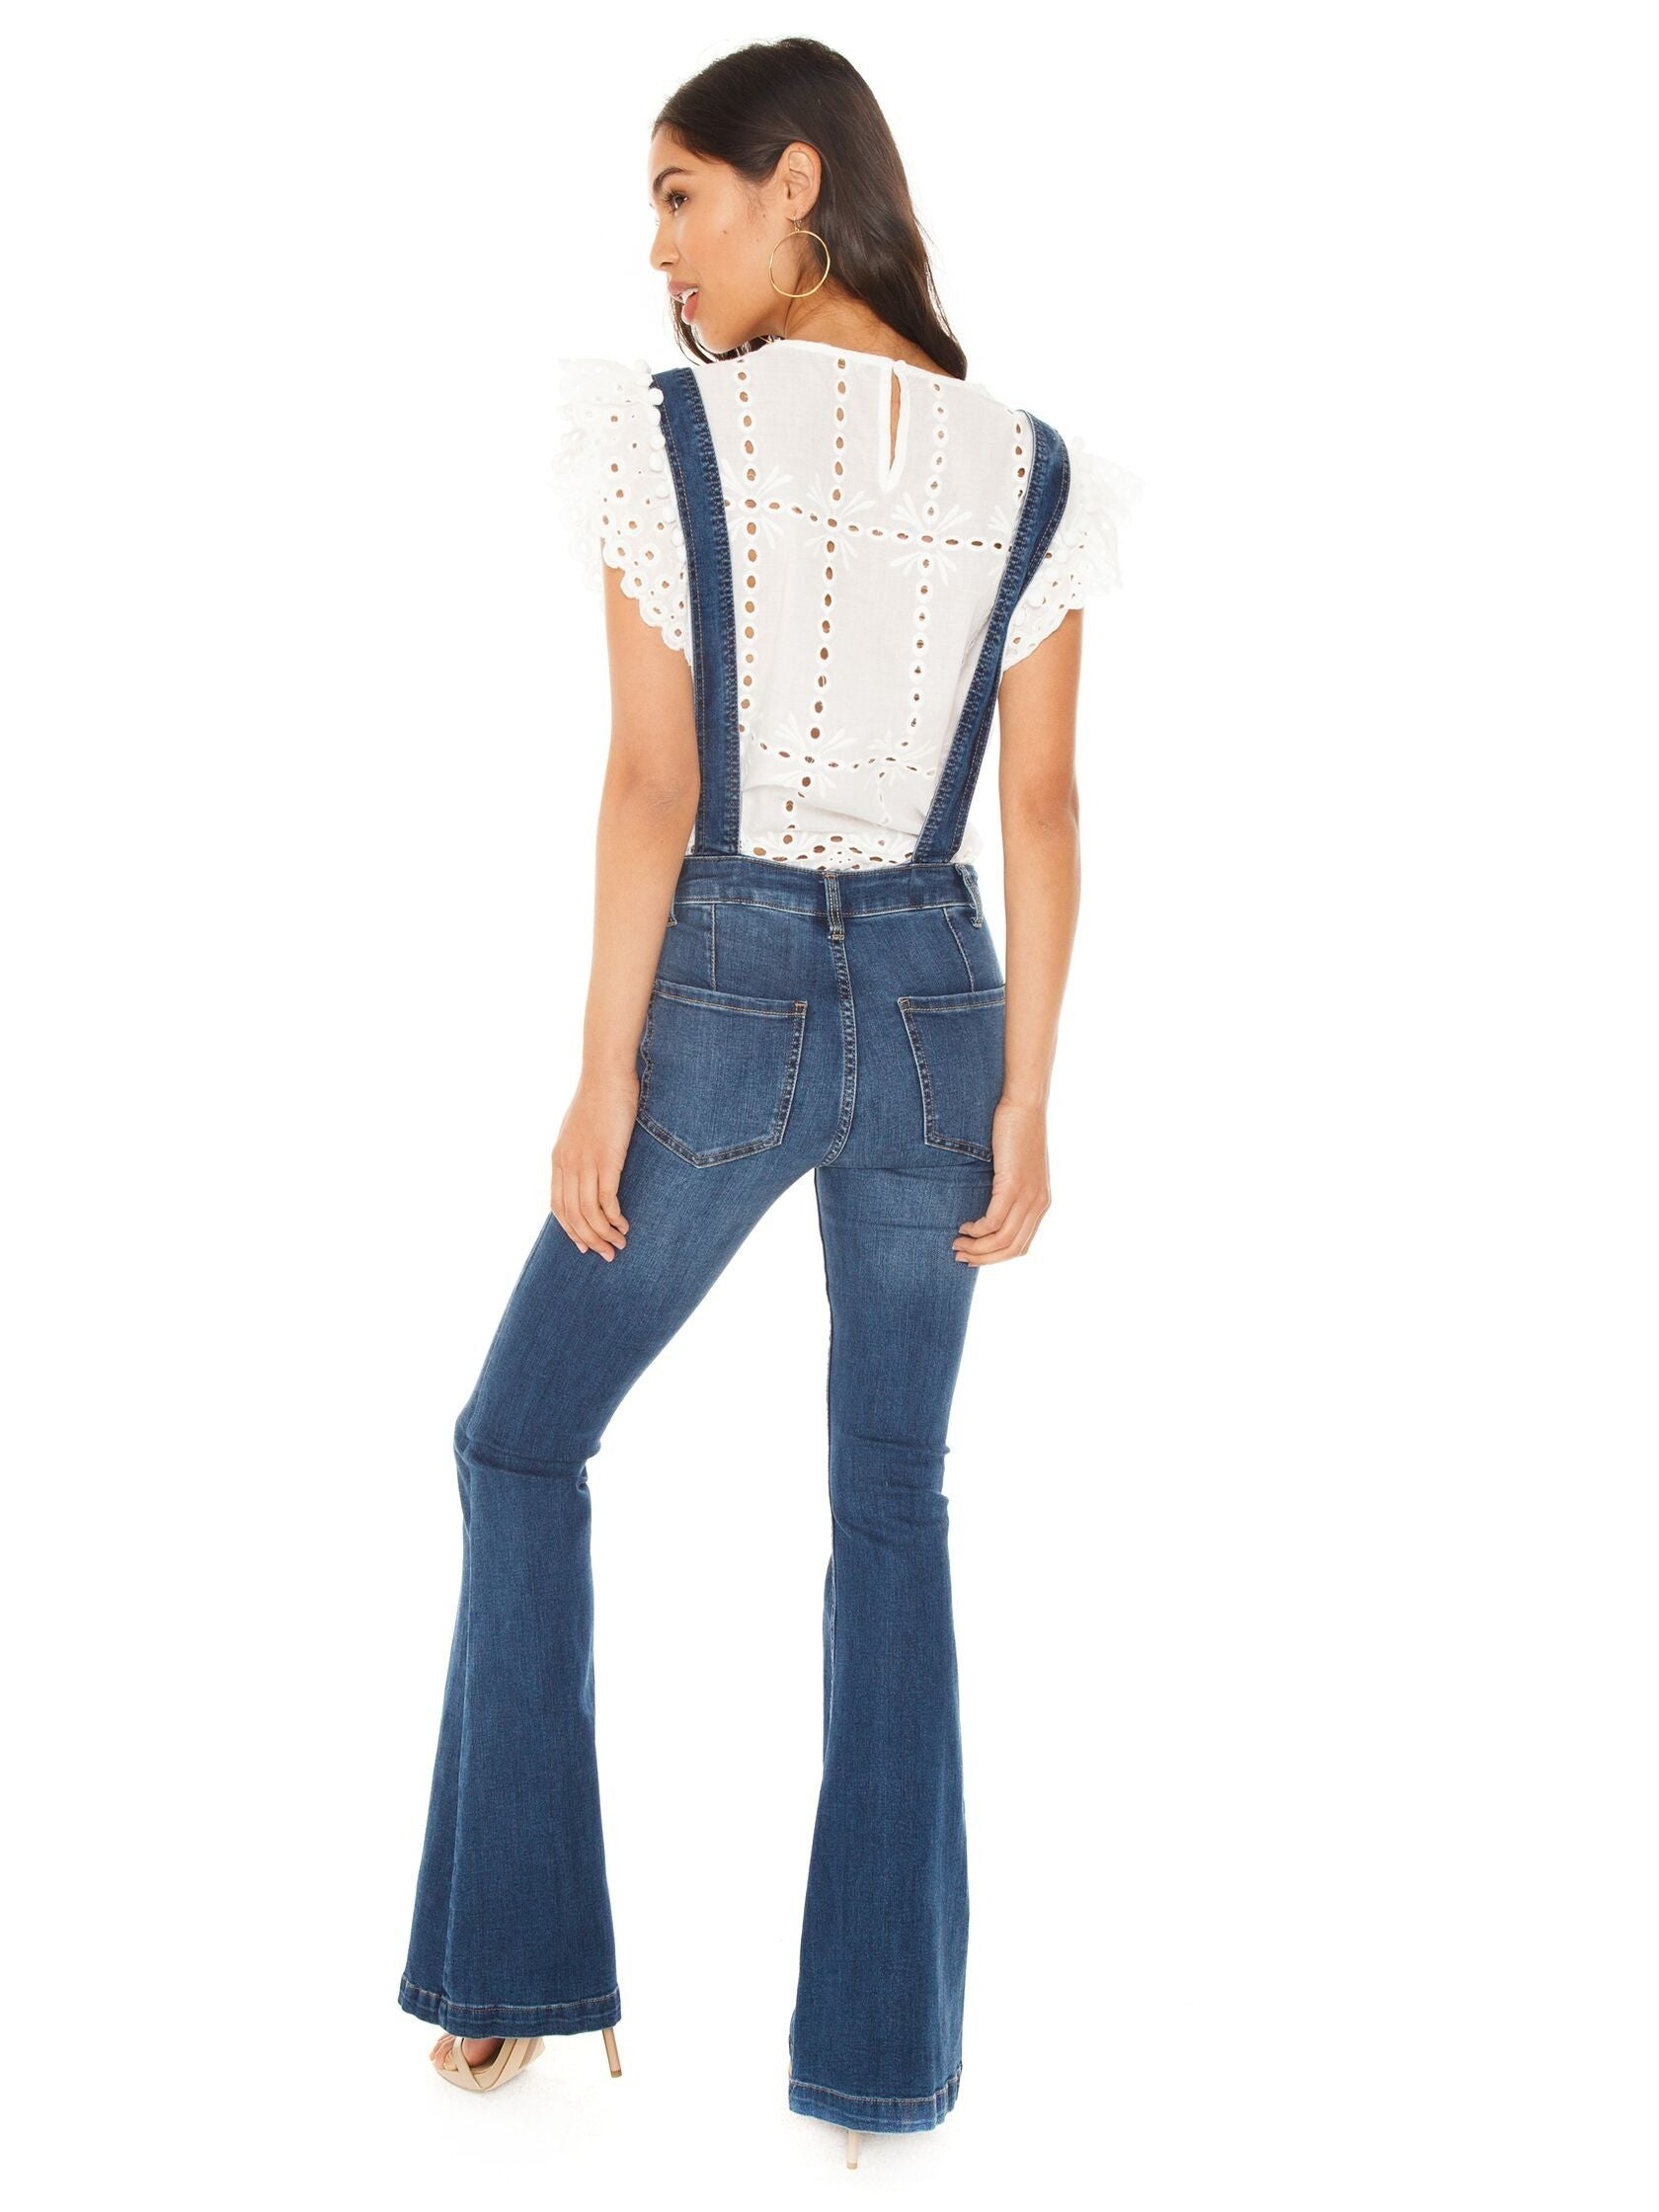 Women wearing a overalls rental from Free People called Carly Flare Overall